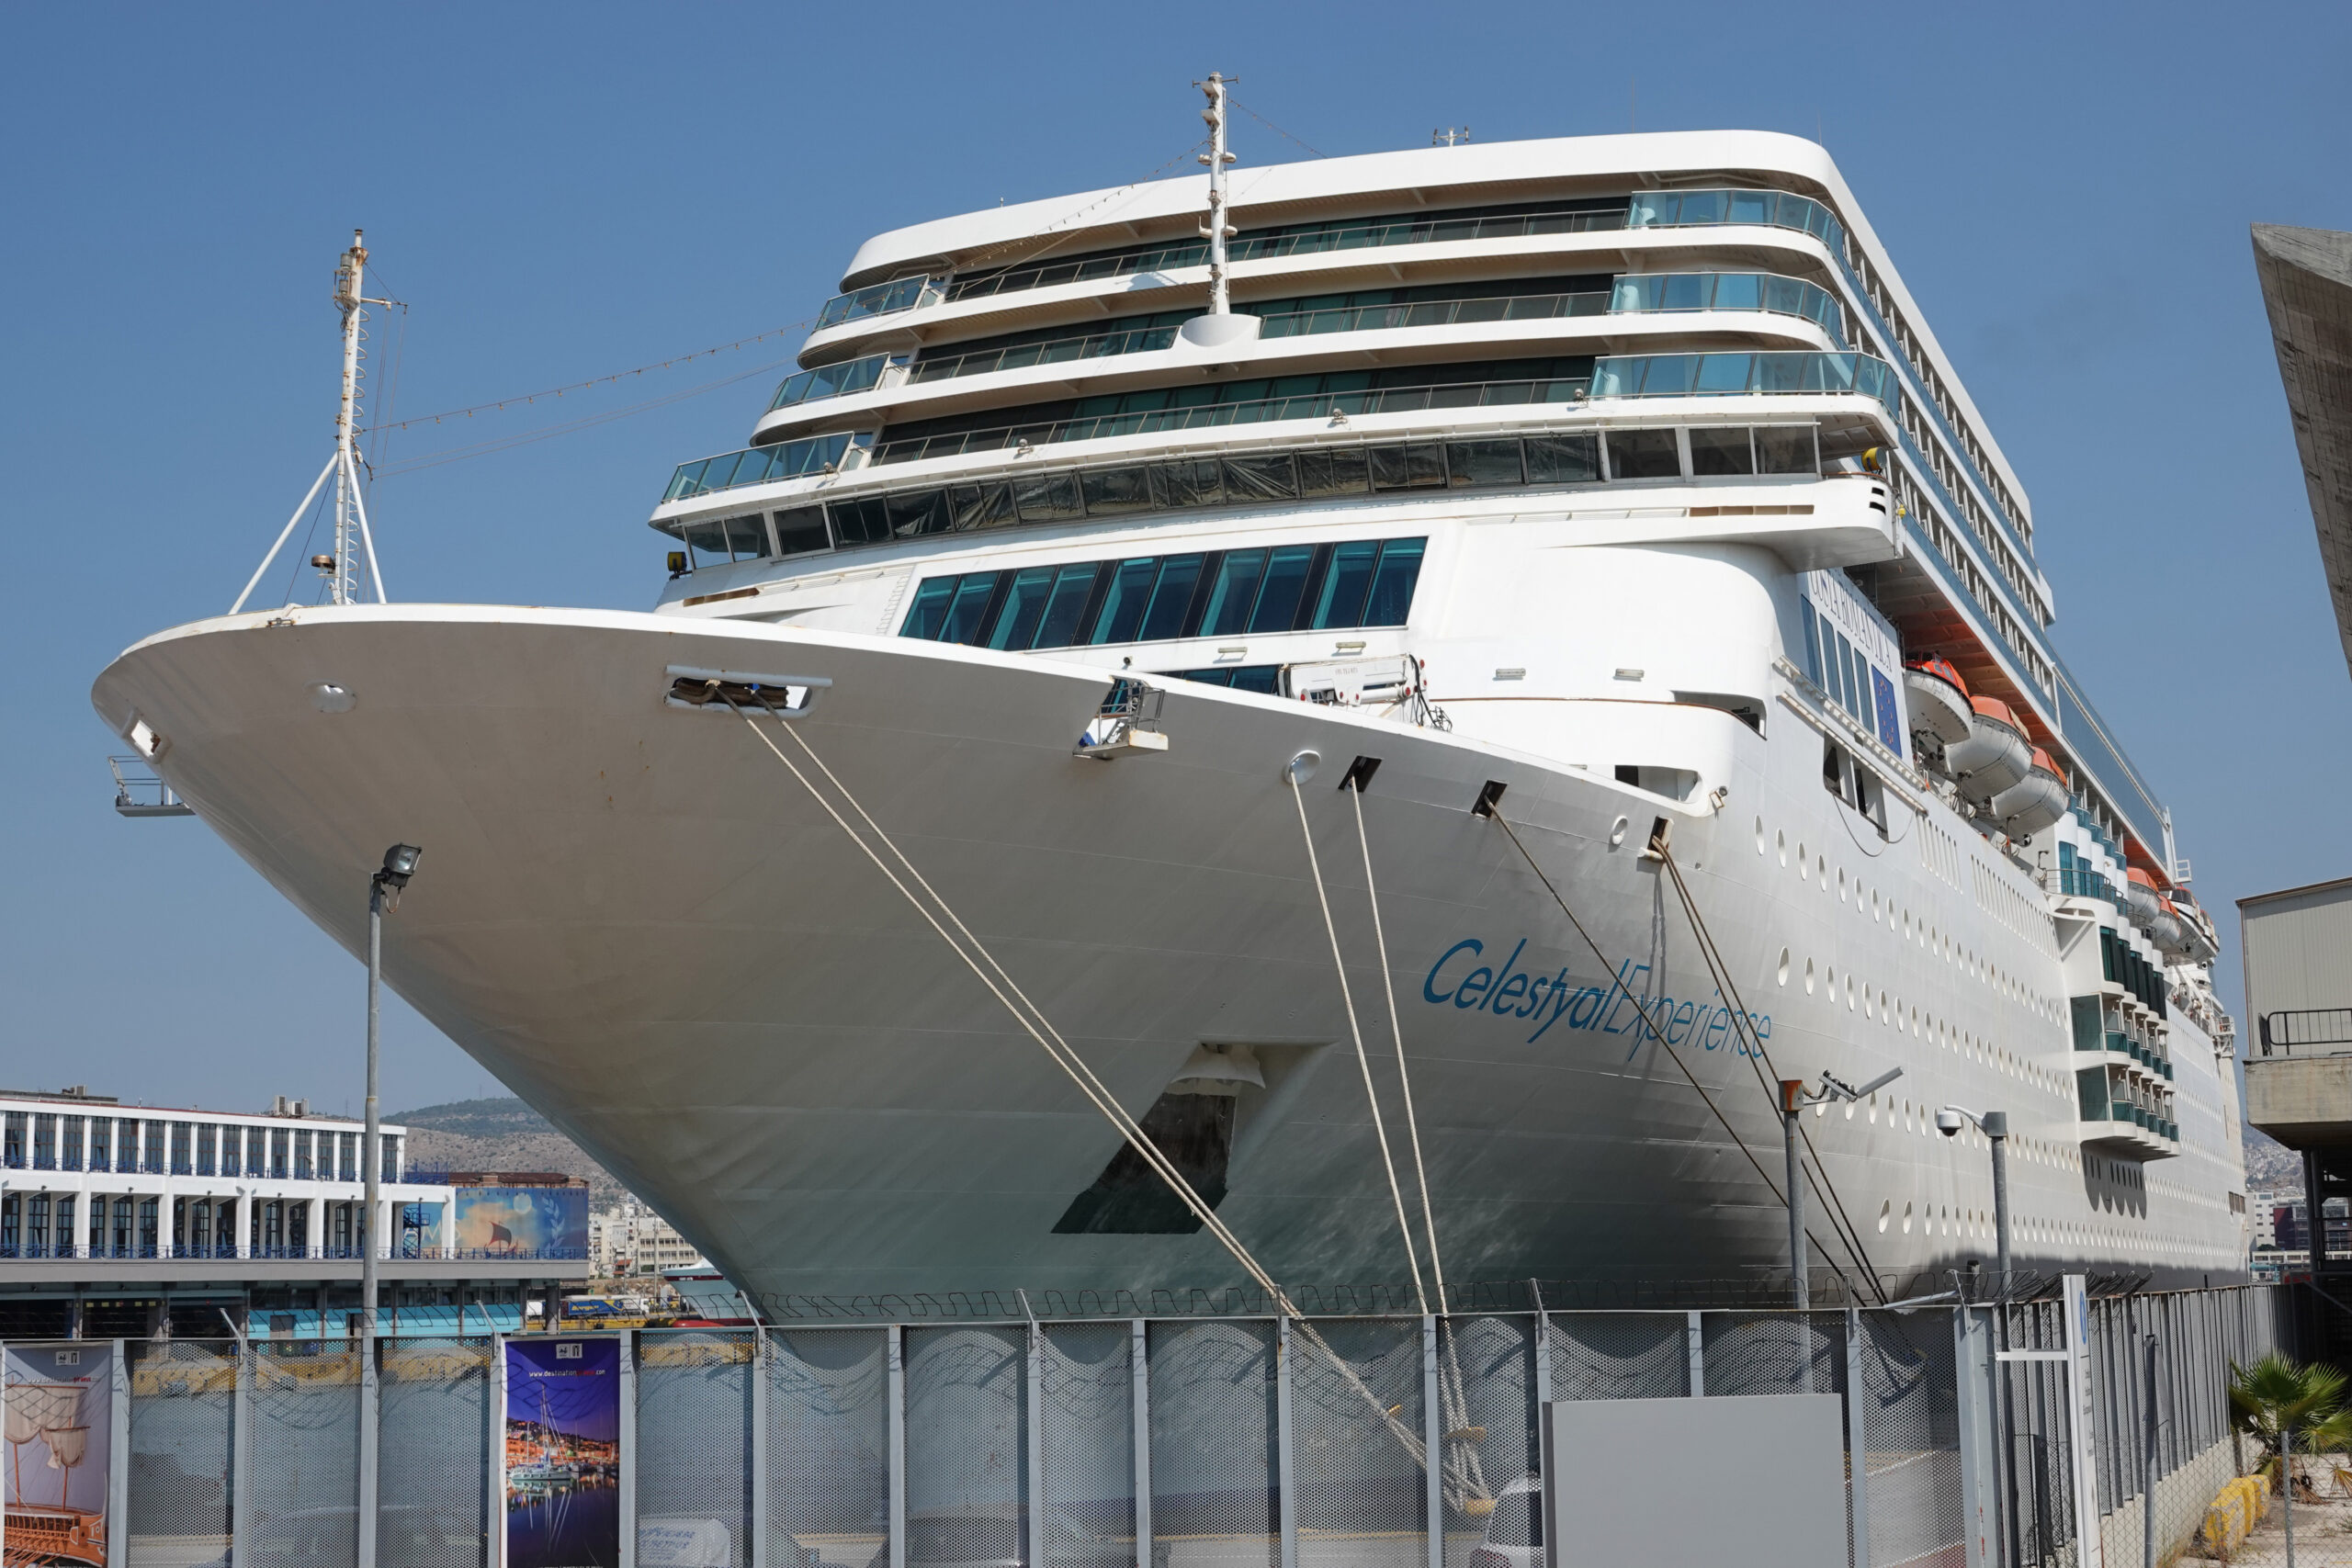 Celestyal Welcomes its Newest Ship the Celestyal Experience